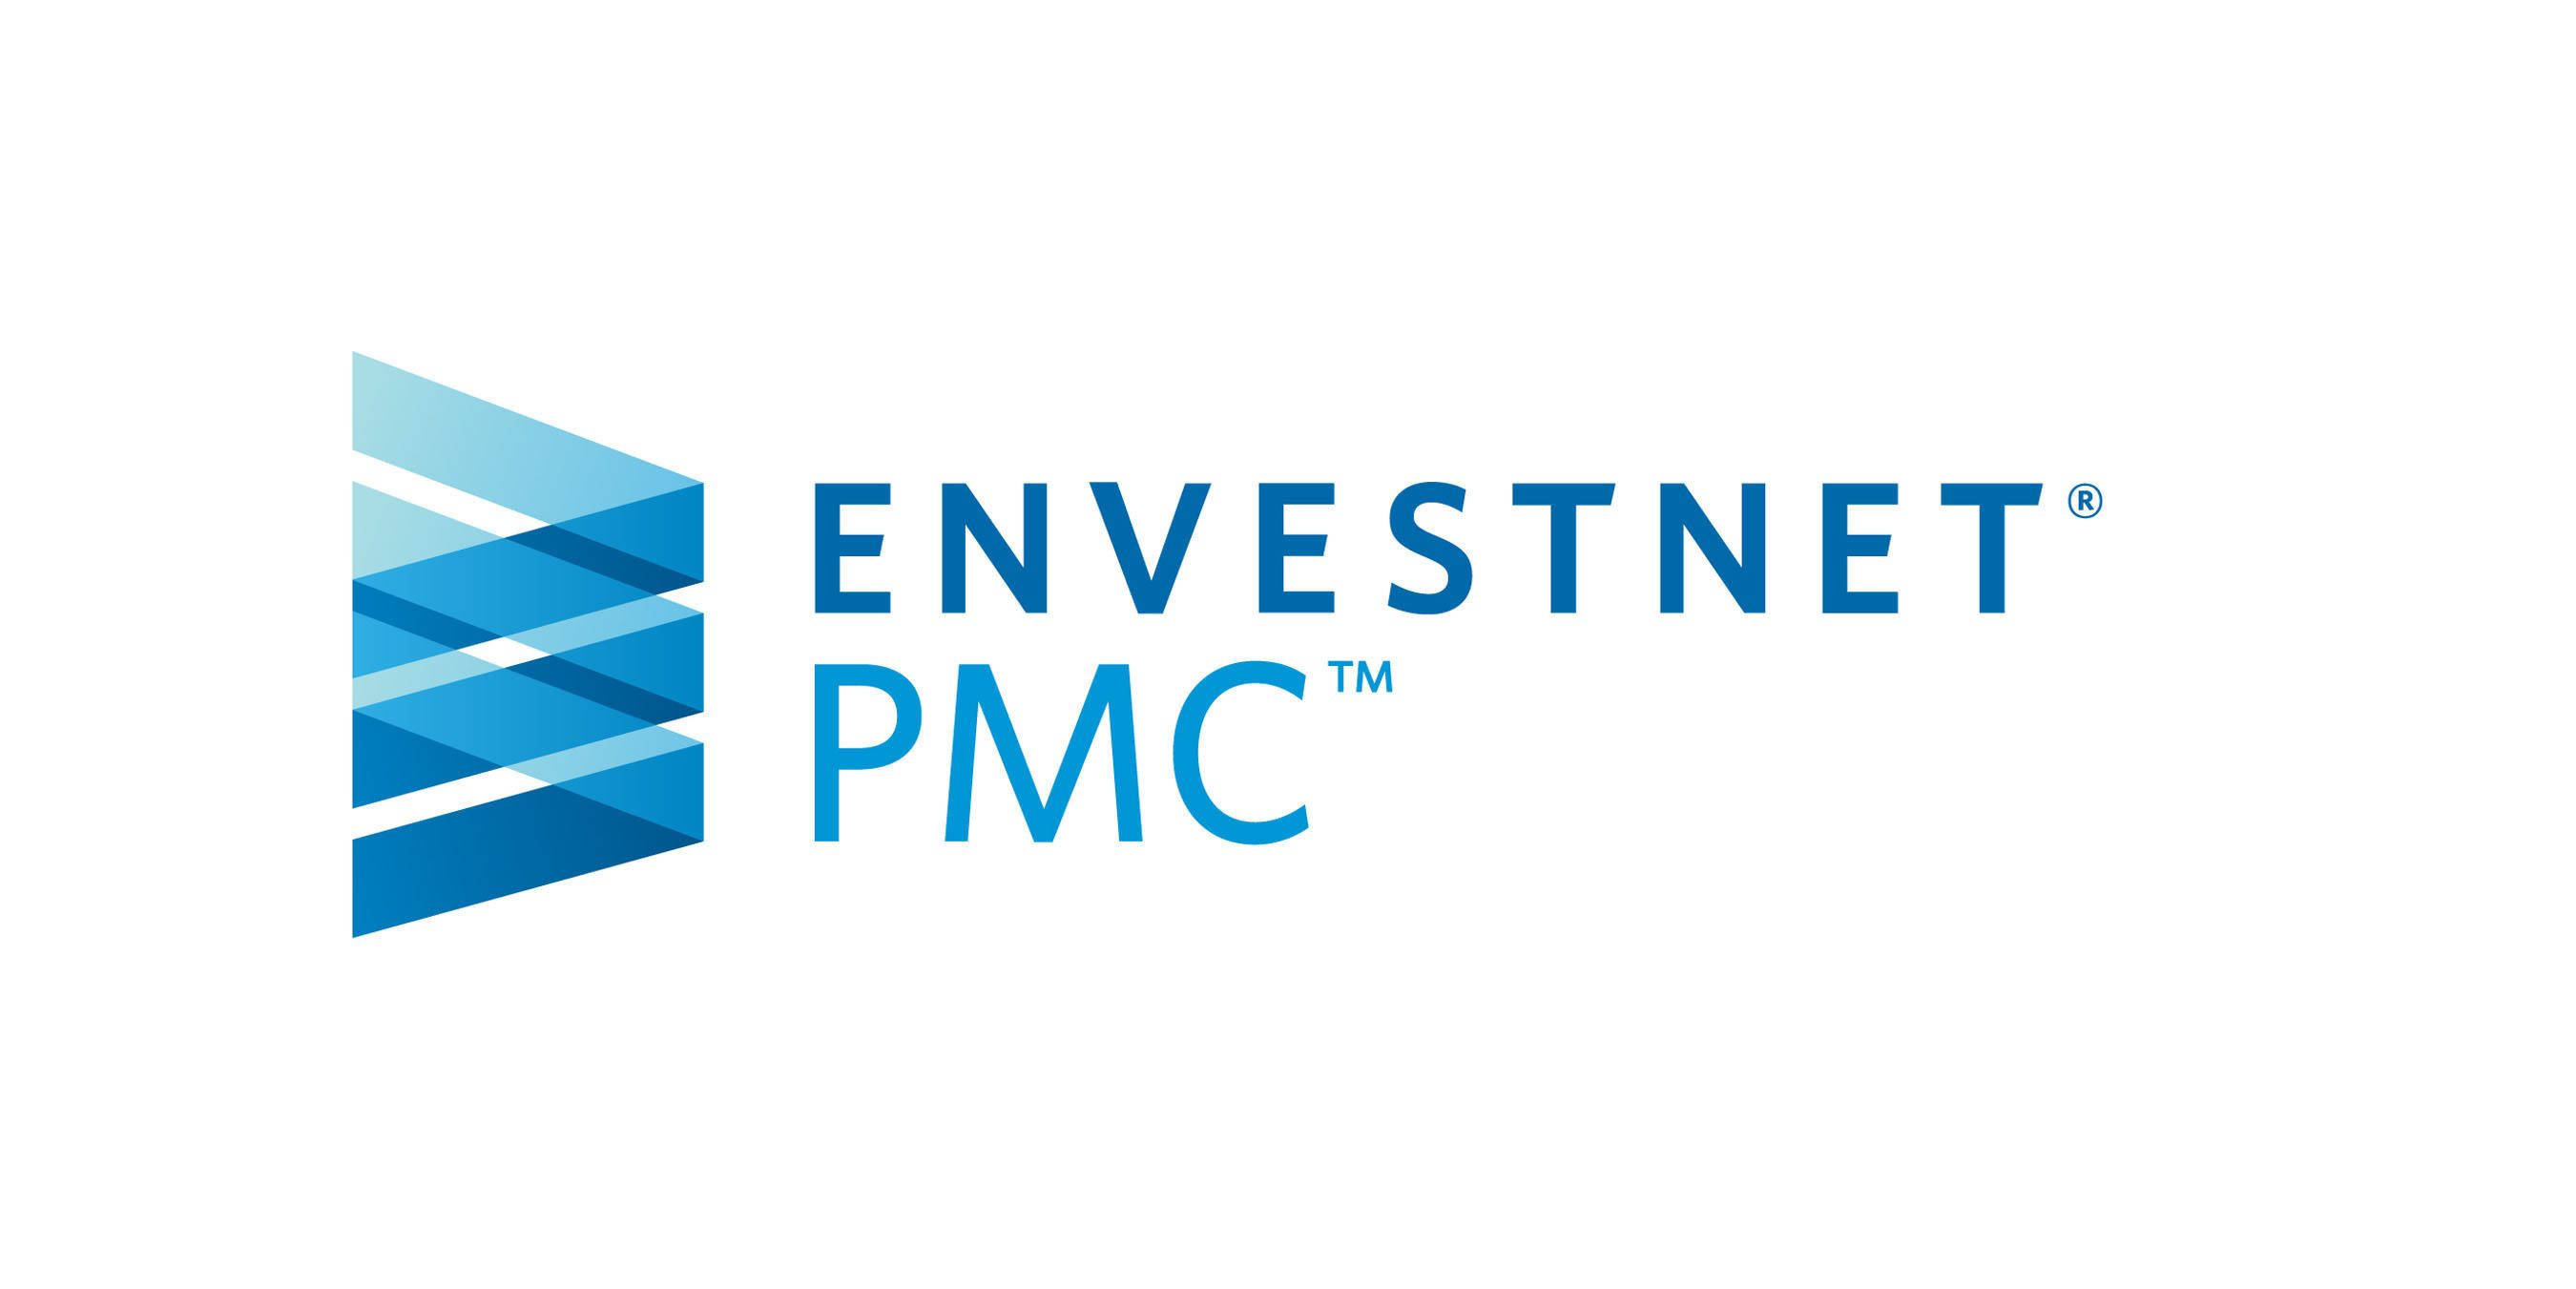 Envestnet | PMC provides independent advisors, broker-dealers, and institutional investors with the research, expertise, and investment solutions - from due diligence and comprehensive manager research to portfolio consulting and portfolio management - they need to help improve client outcomes. For more information on Envestnet | PMC, please visit  http://www.investpmc.com/ . (PRNewsFoto/Envestnet | PMC) (PRNewsFoto/ENVESTNET, INC.)